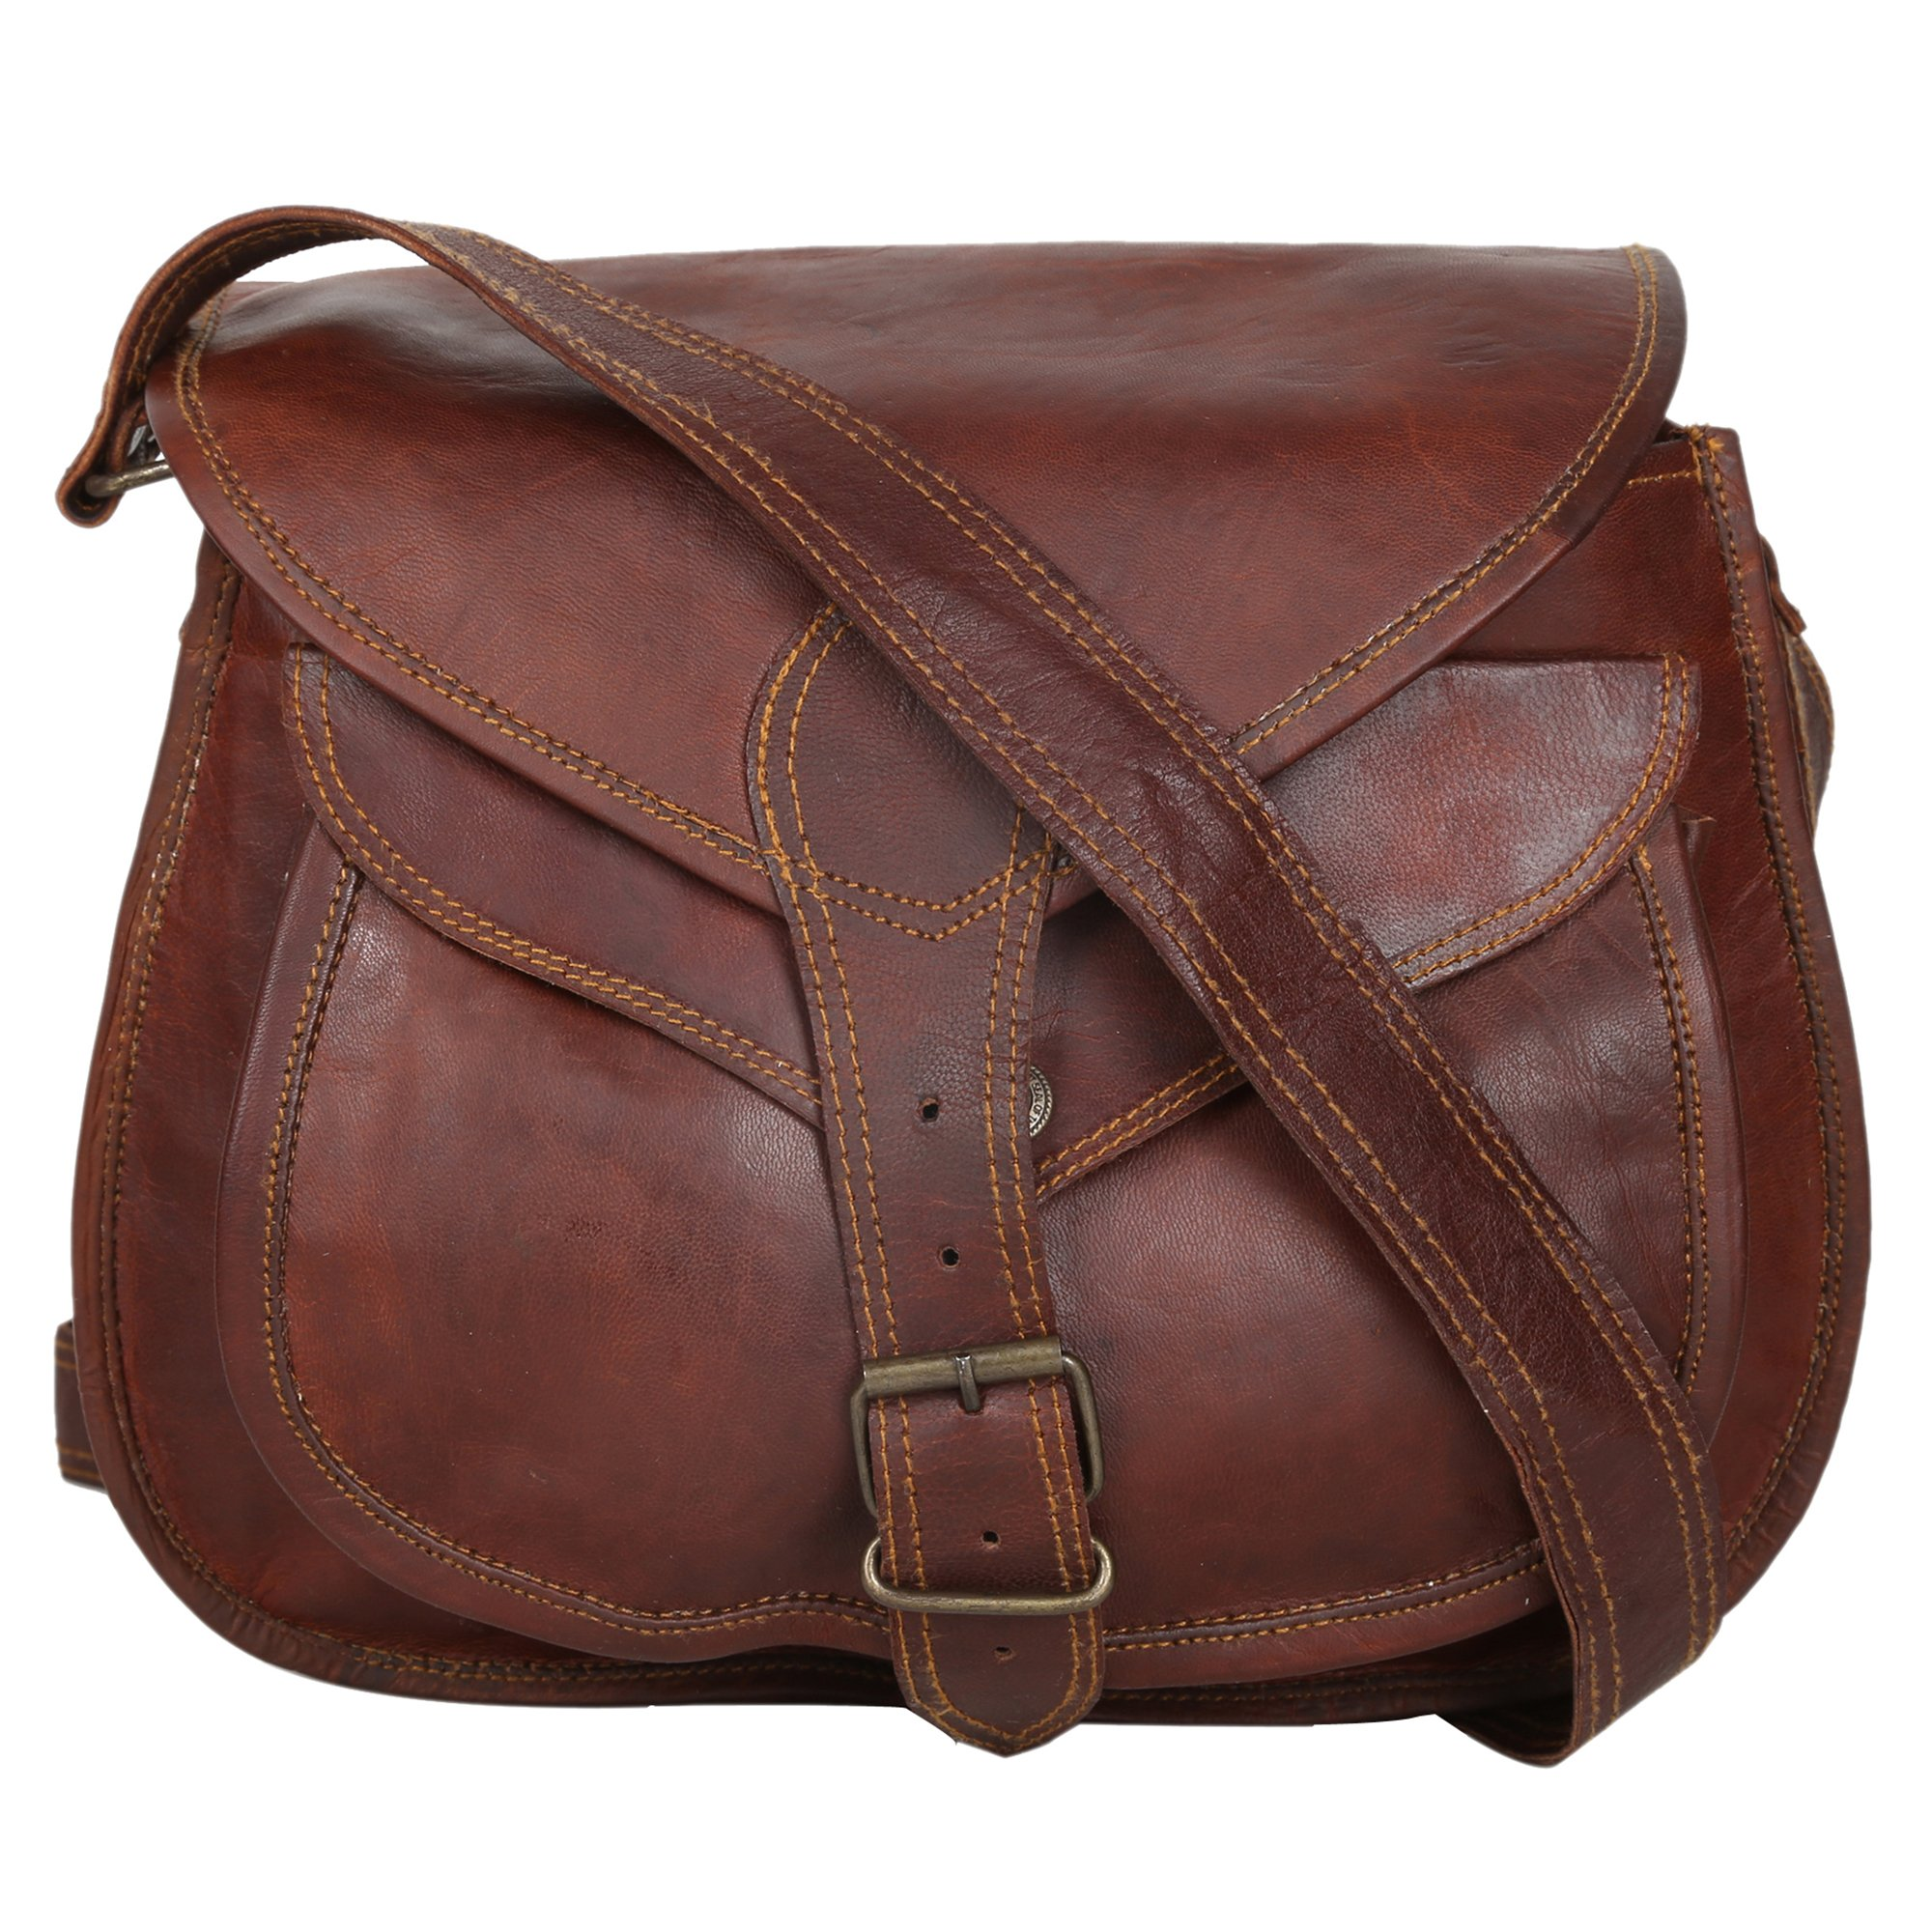 ''Handcraft''''Florence'' Womens Vintage Style Genuine Leather Cross Body Adjustable Shoulder Bag Brown 11''